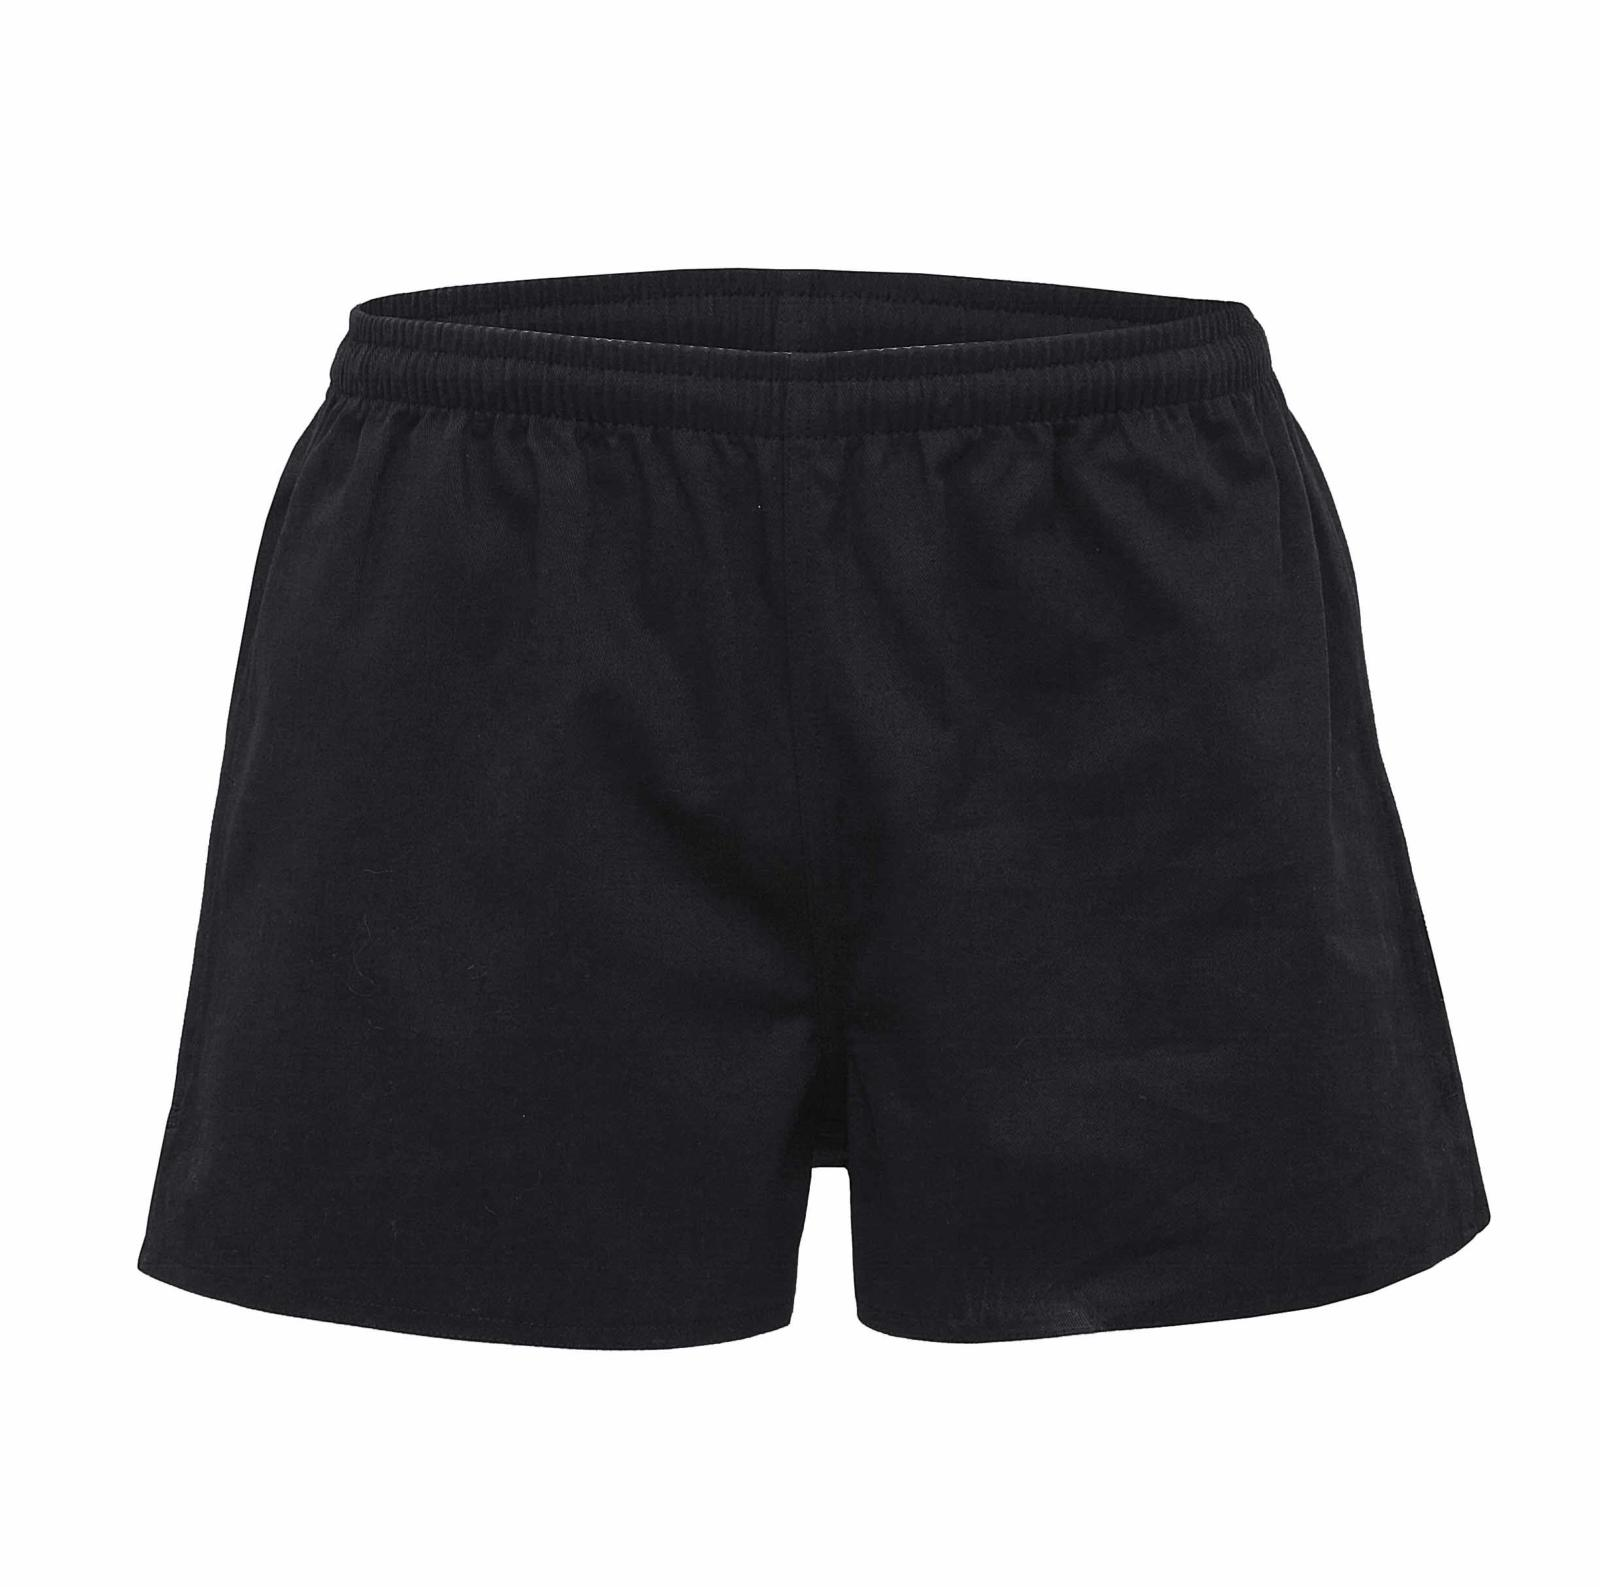 Youth Rugby Shorts